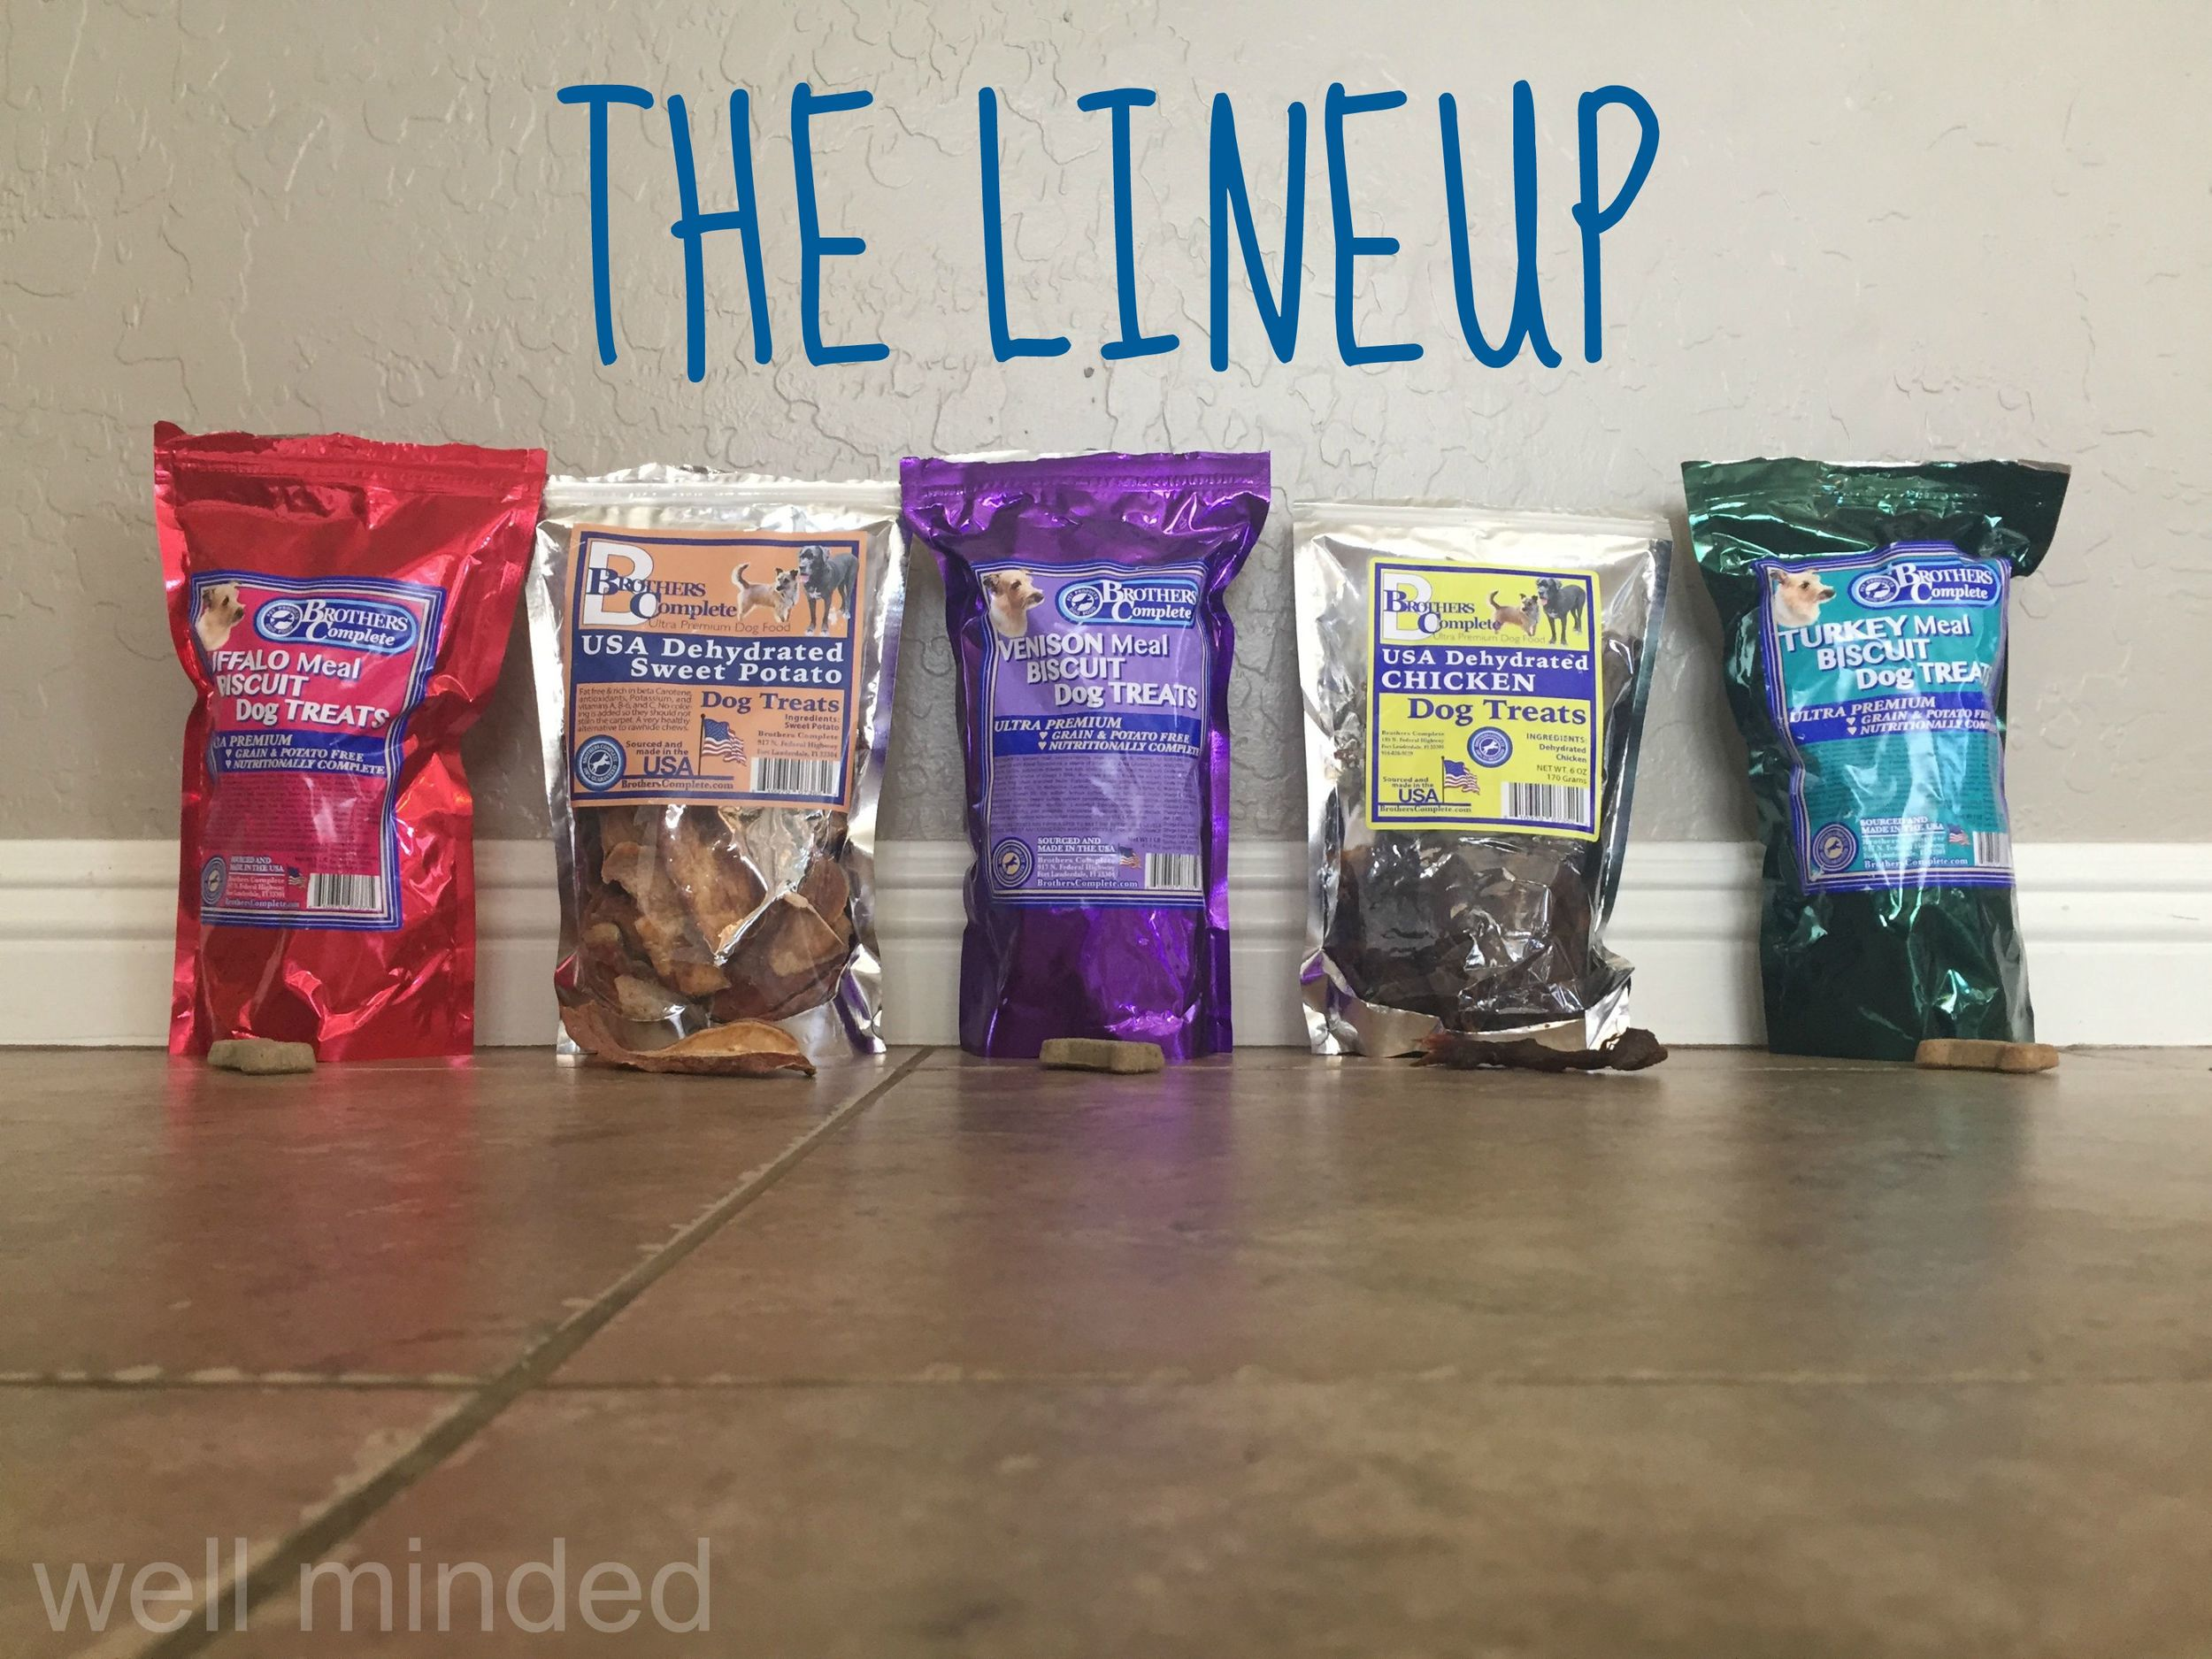 The complete lineup of Brothers Complete dog treats, ready to be sampled.